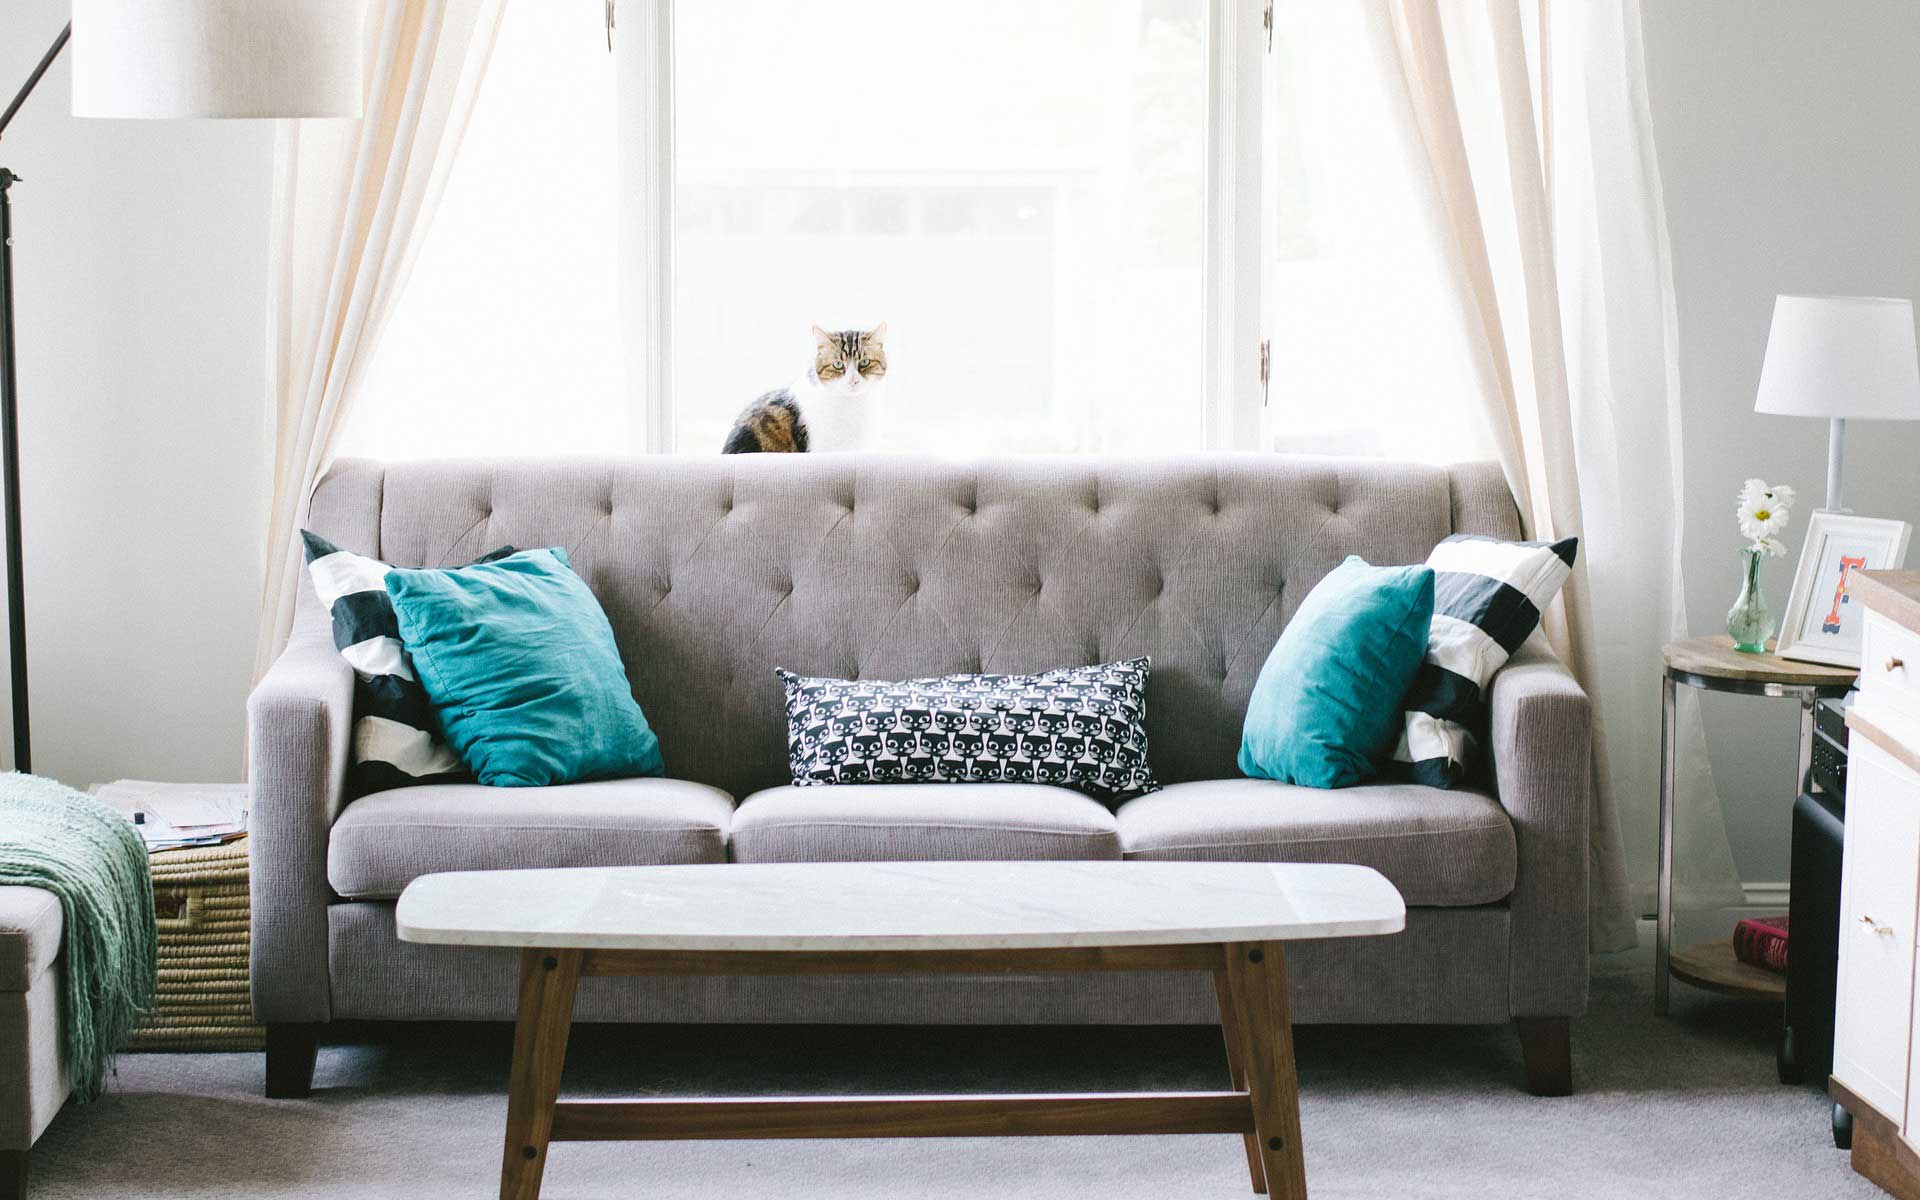 Living room couch with throw pillows and a cat sitting on the console table